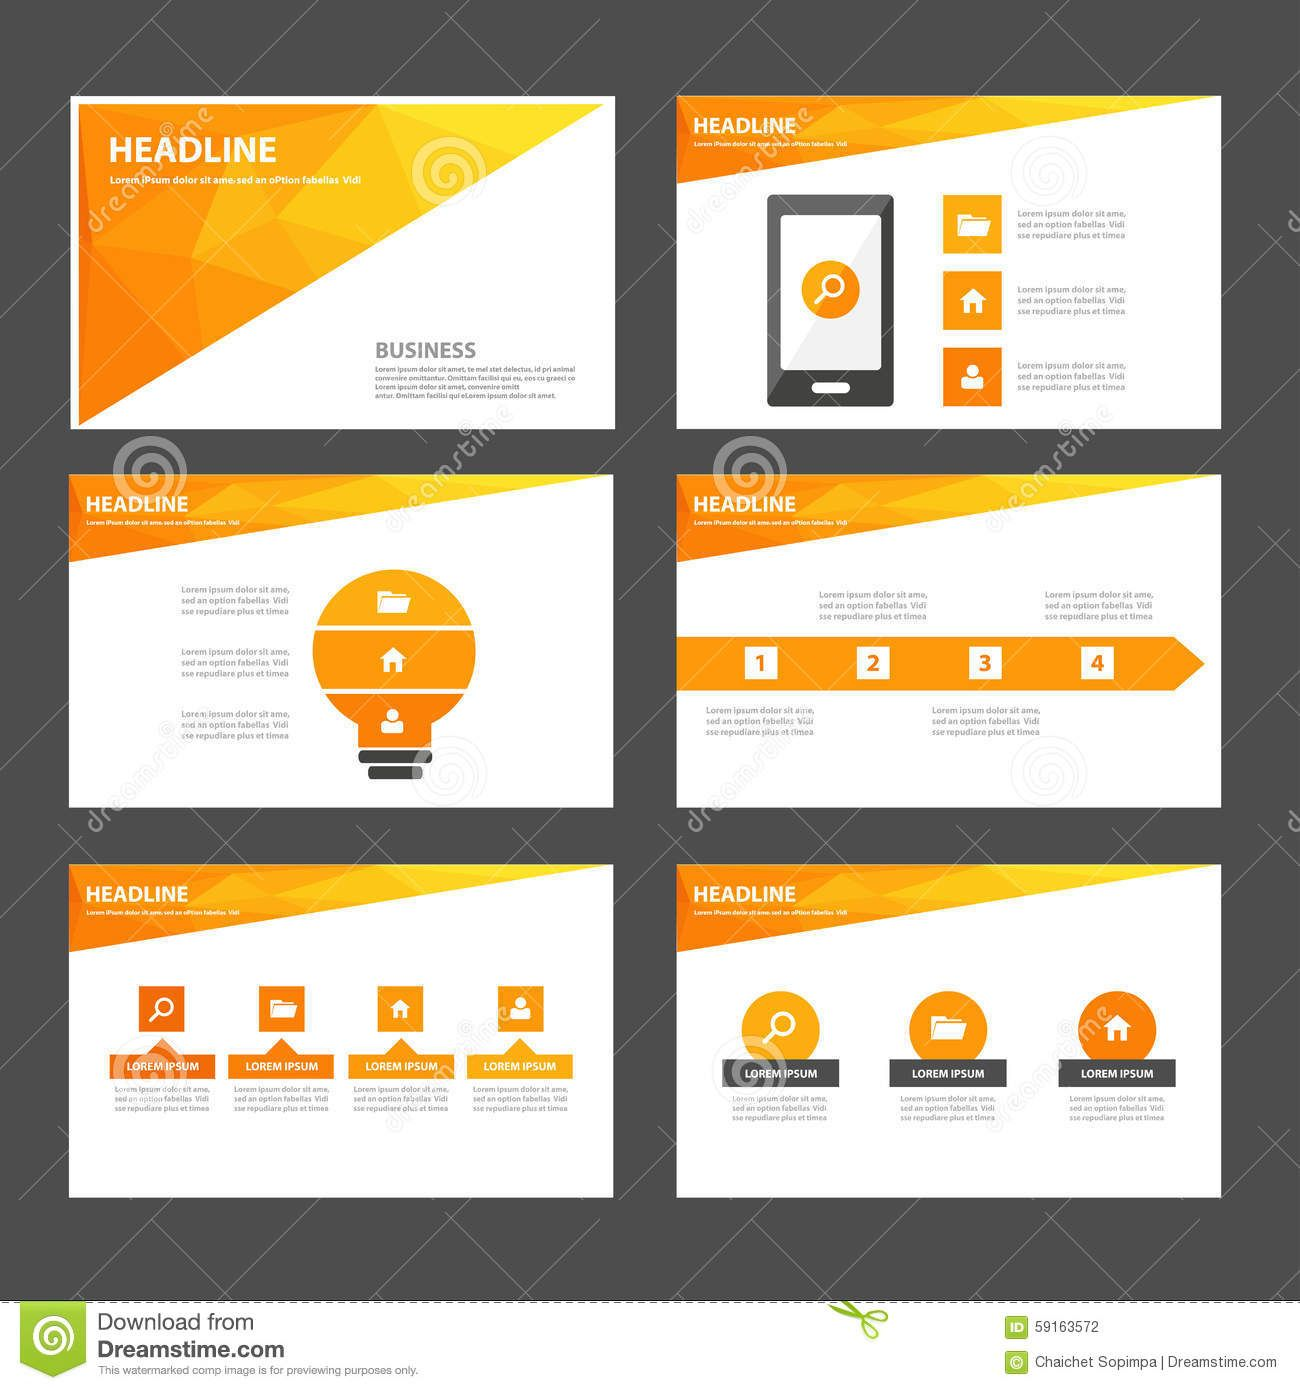 red green and green infographic element and icon presentation